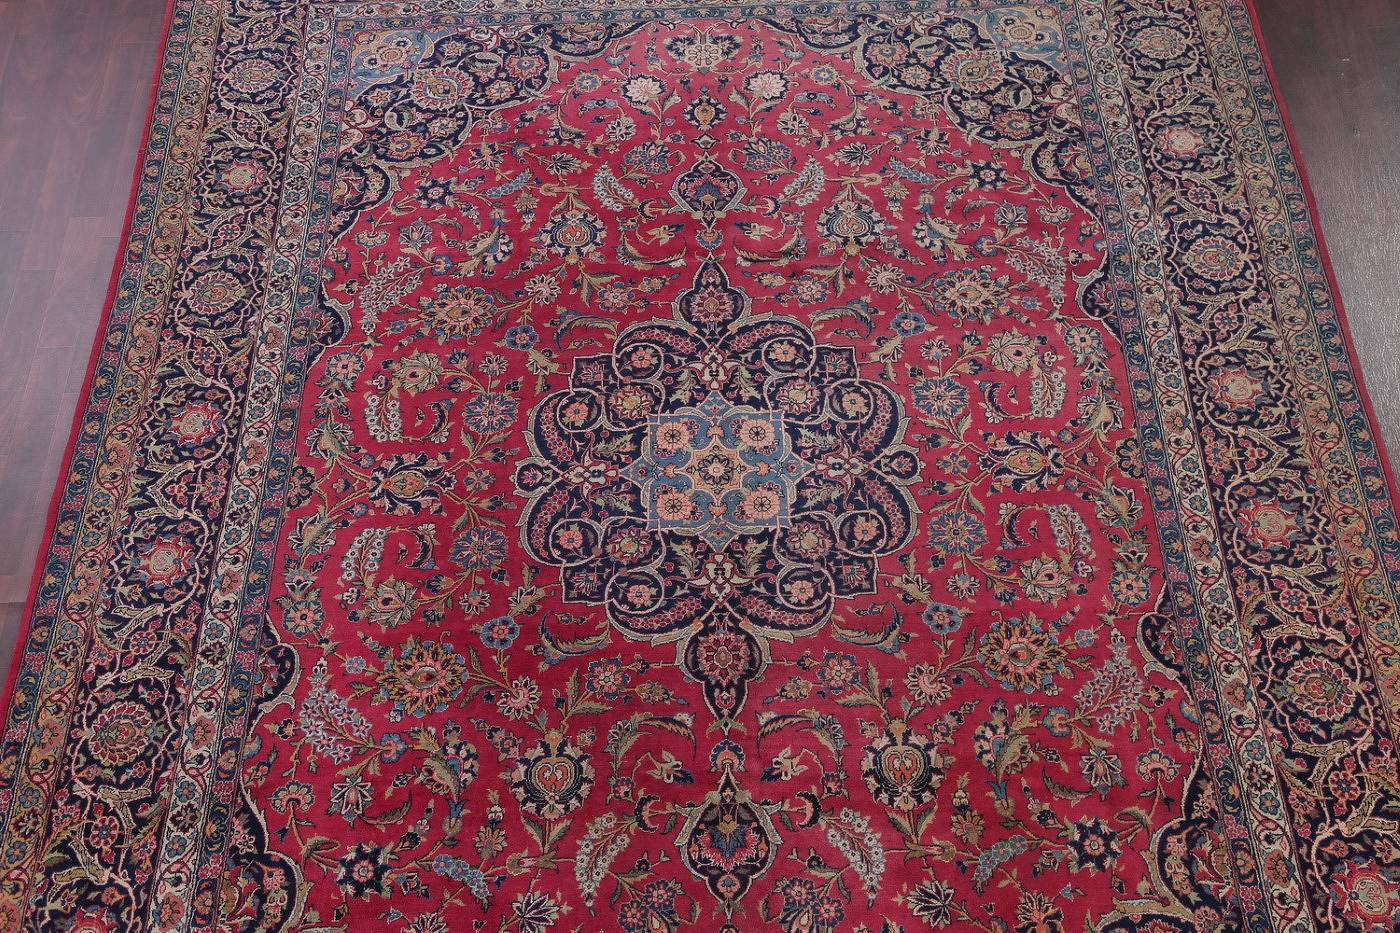 Antique Floral Red Kashan Persian Hand-Knotted Area Rug Wool 9x12